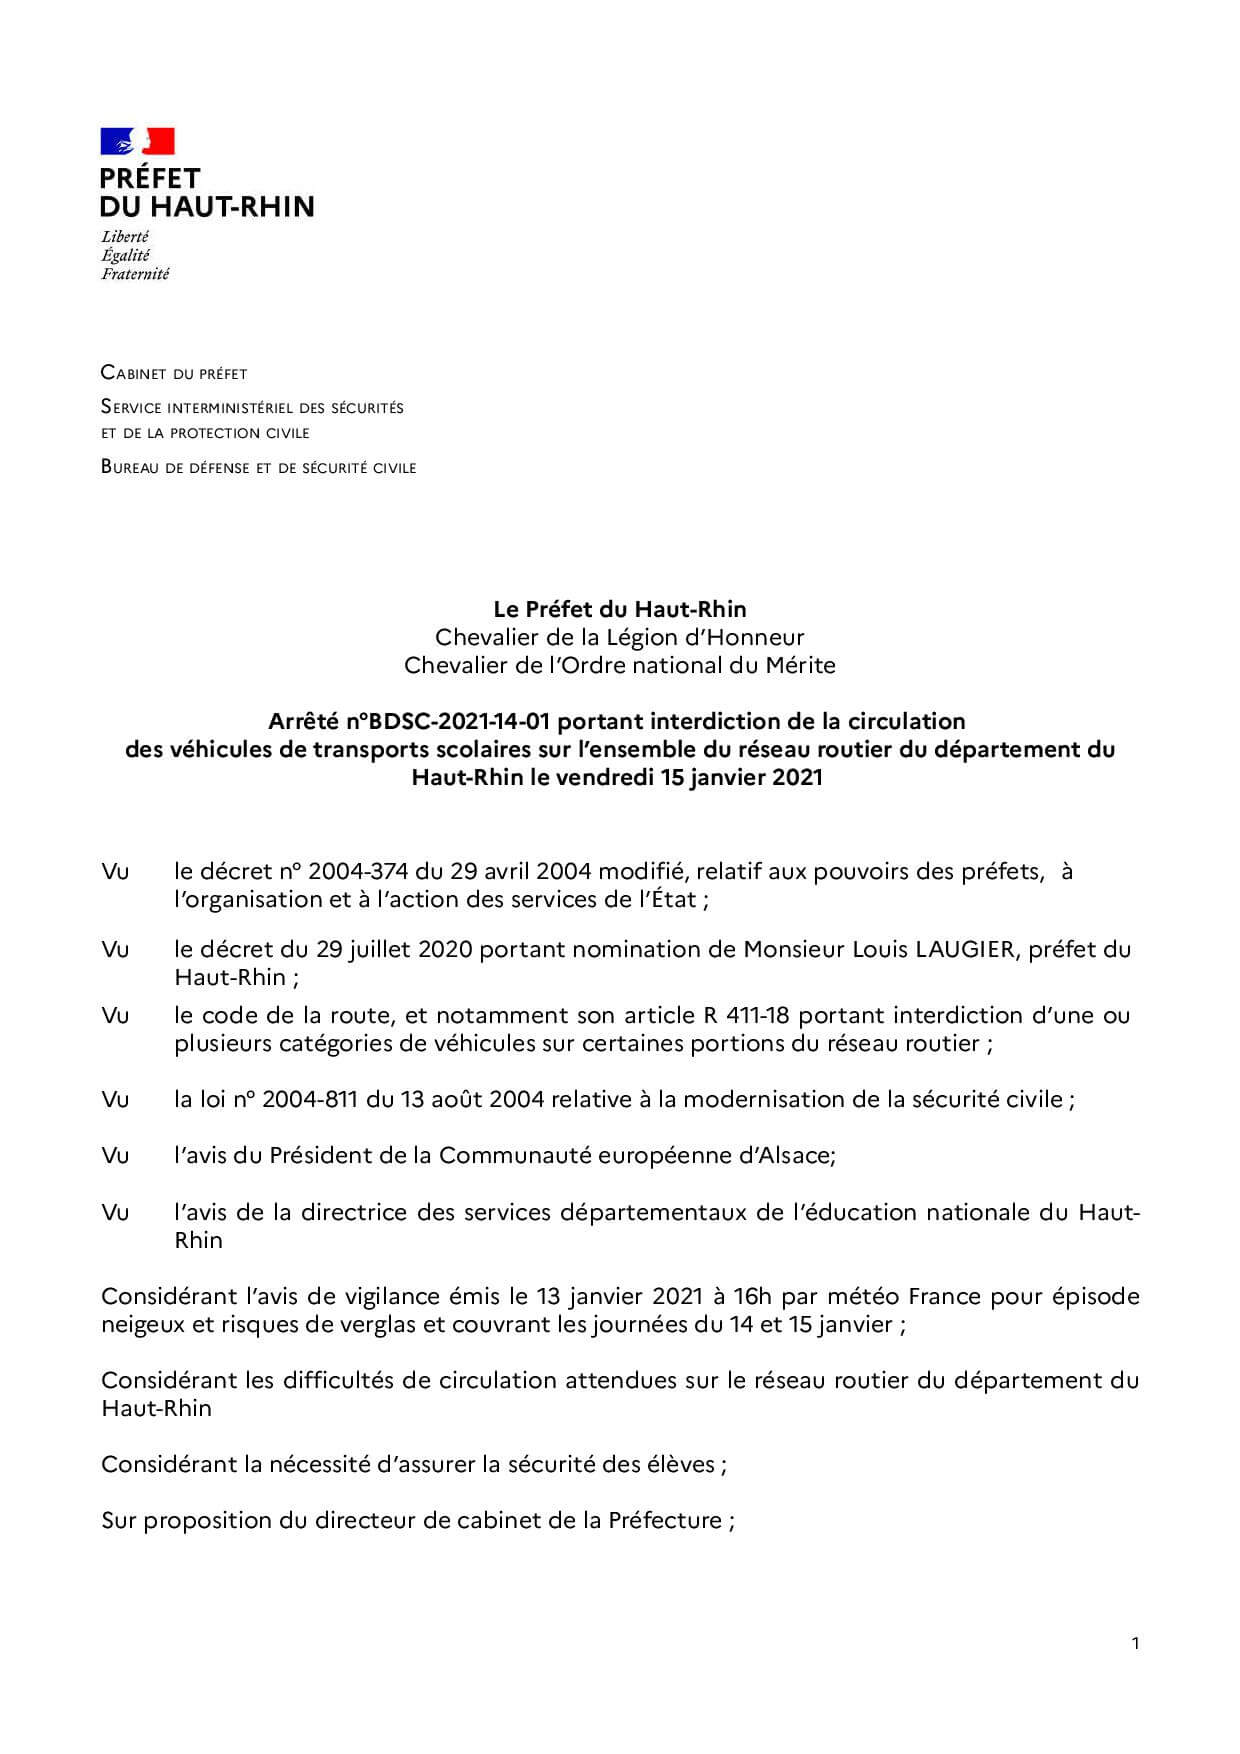 Arrêté interdiction transport scolaire 2021